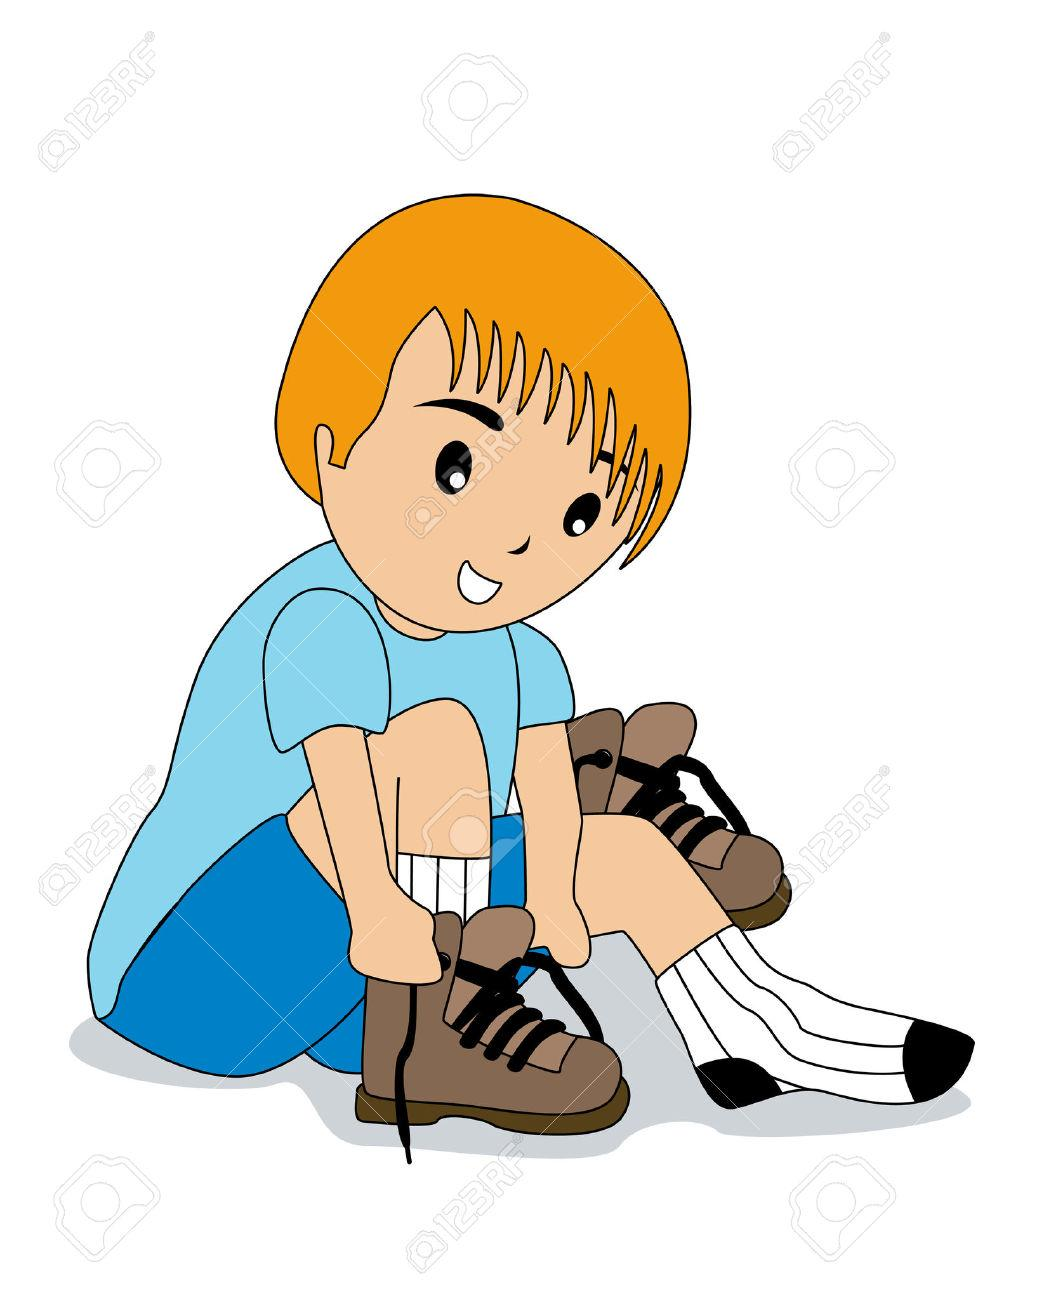 Tying Shoes For Kids Clipart.